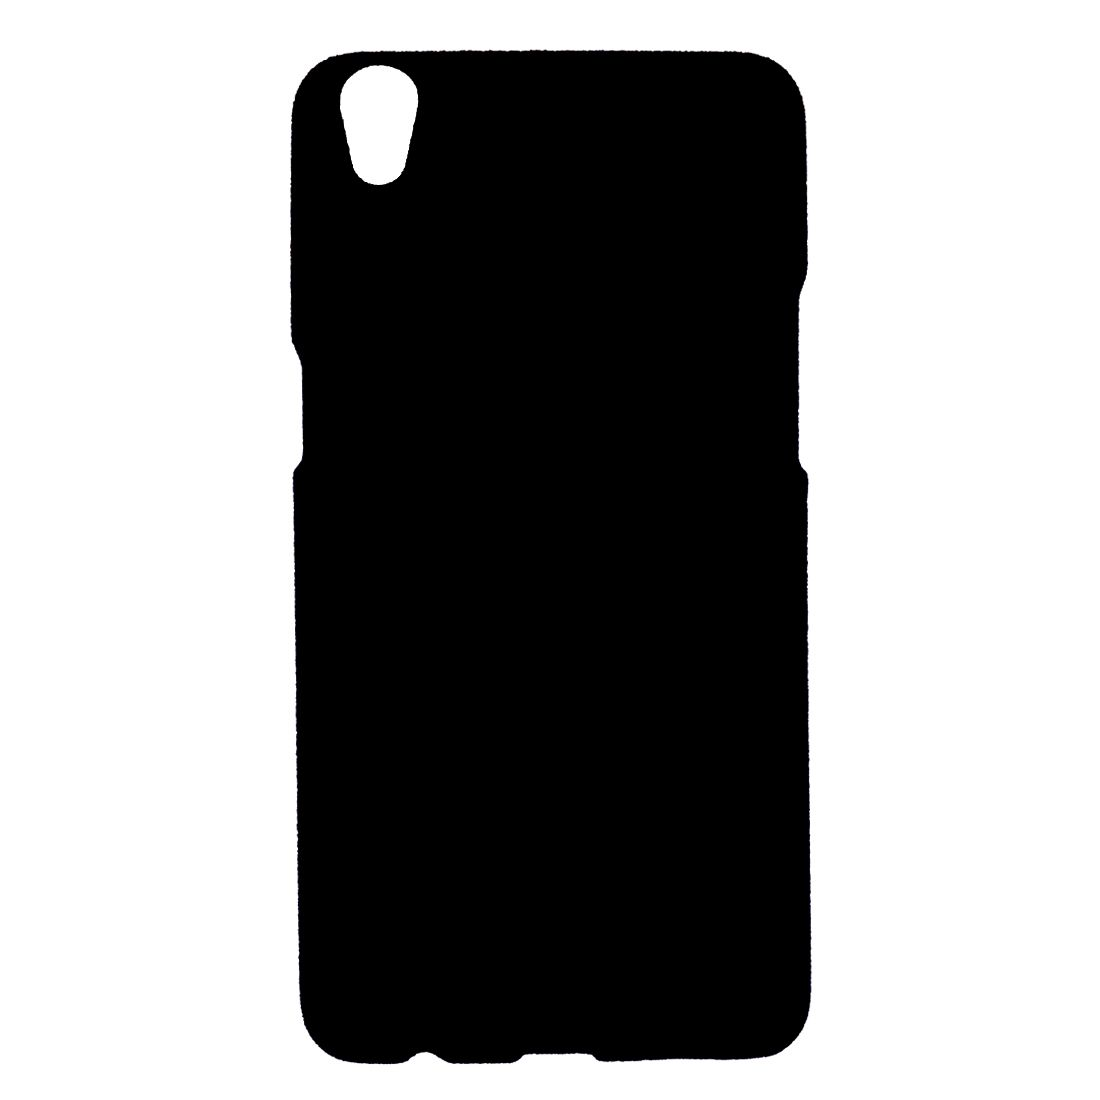 competitive price 76730 f0300 Oppo F1 Plus Cover by Coverup - Black